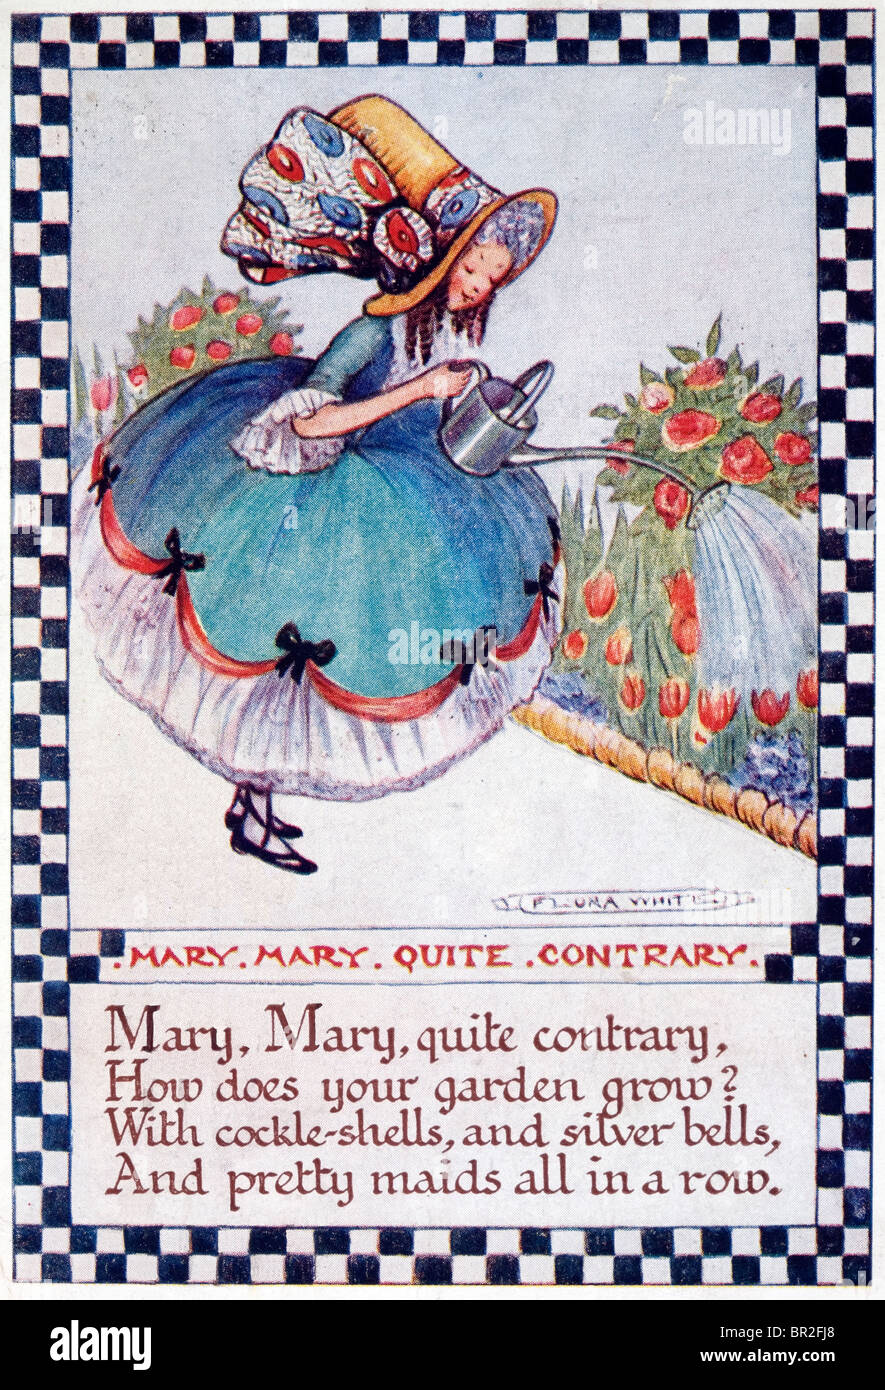 Flora White nursery rhyme card from about 1920. 'Mary Mary Quite Contrary' - Stock Image